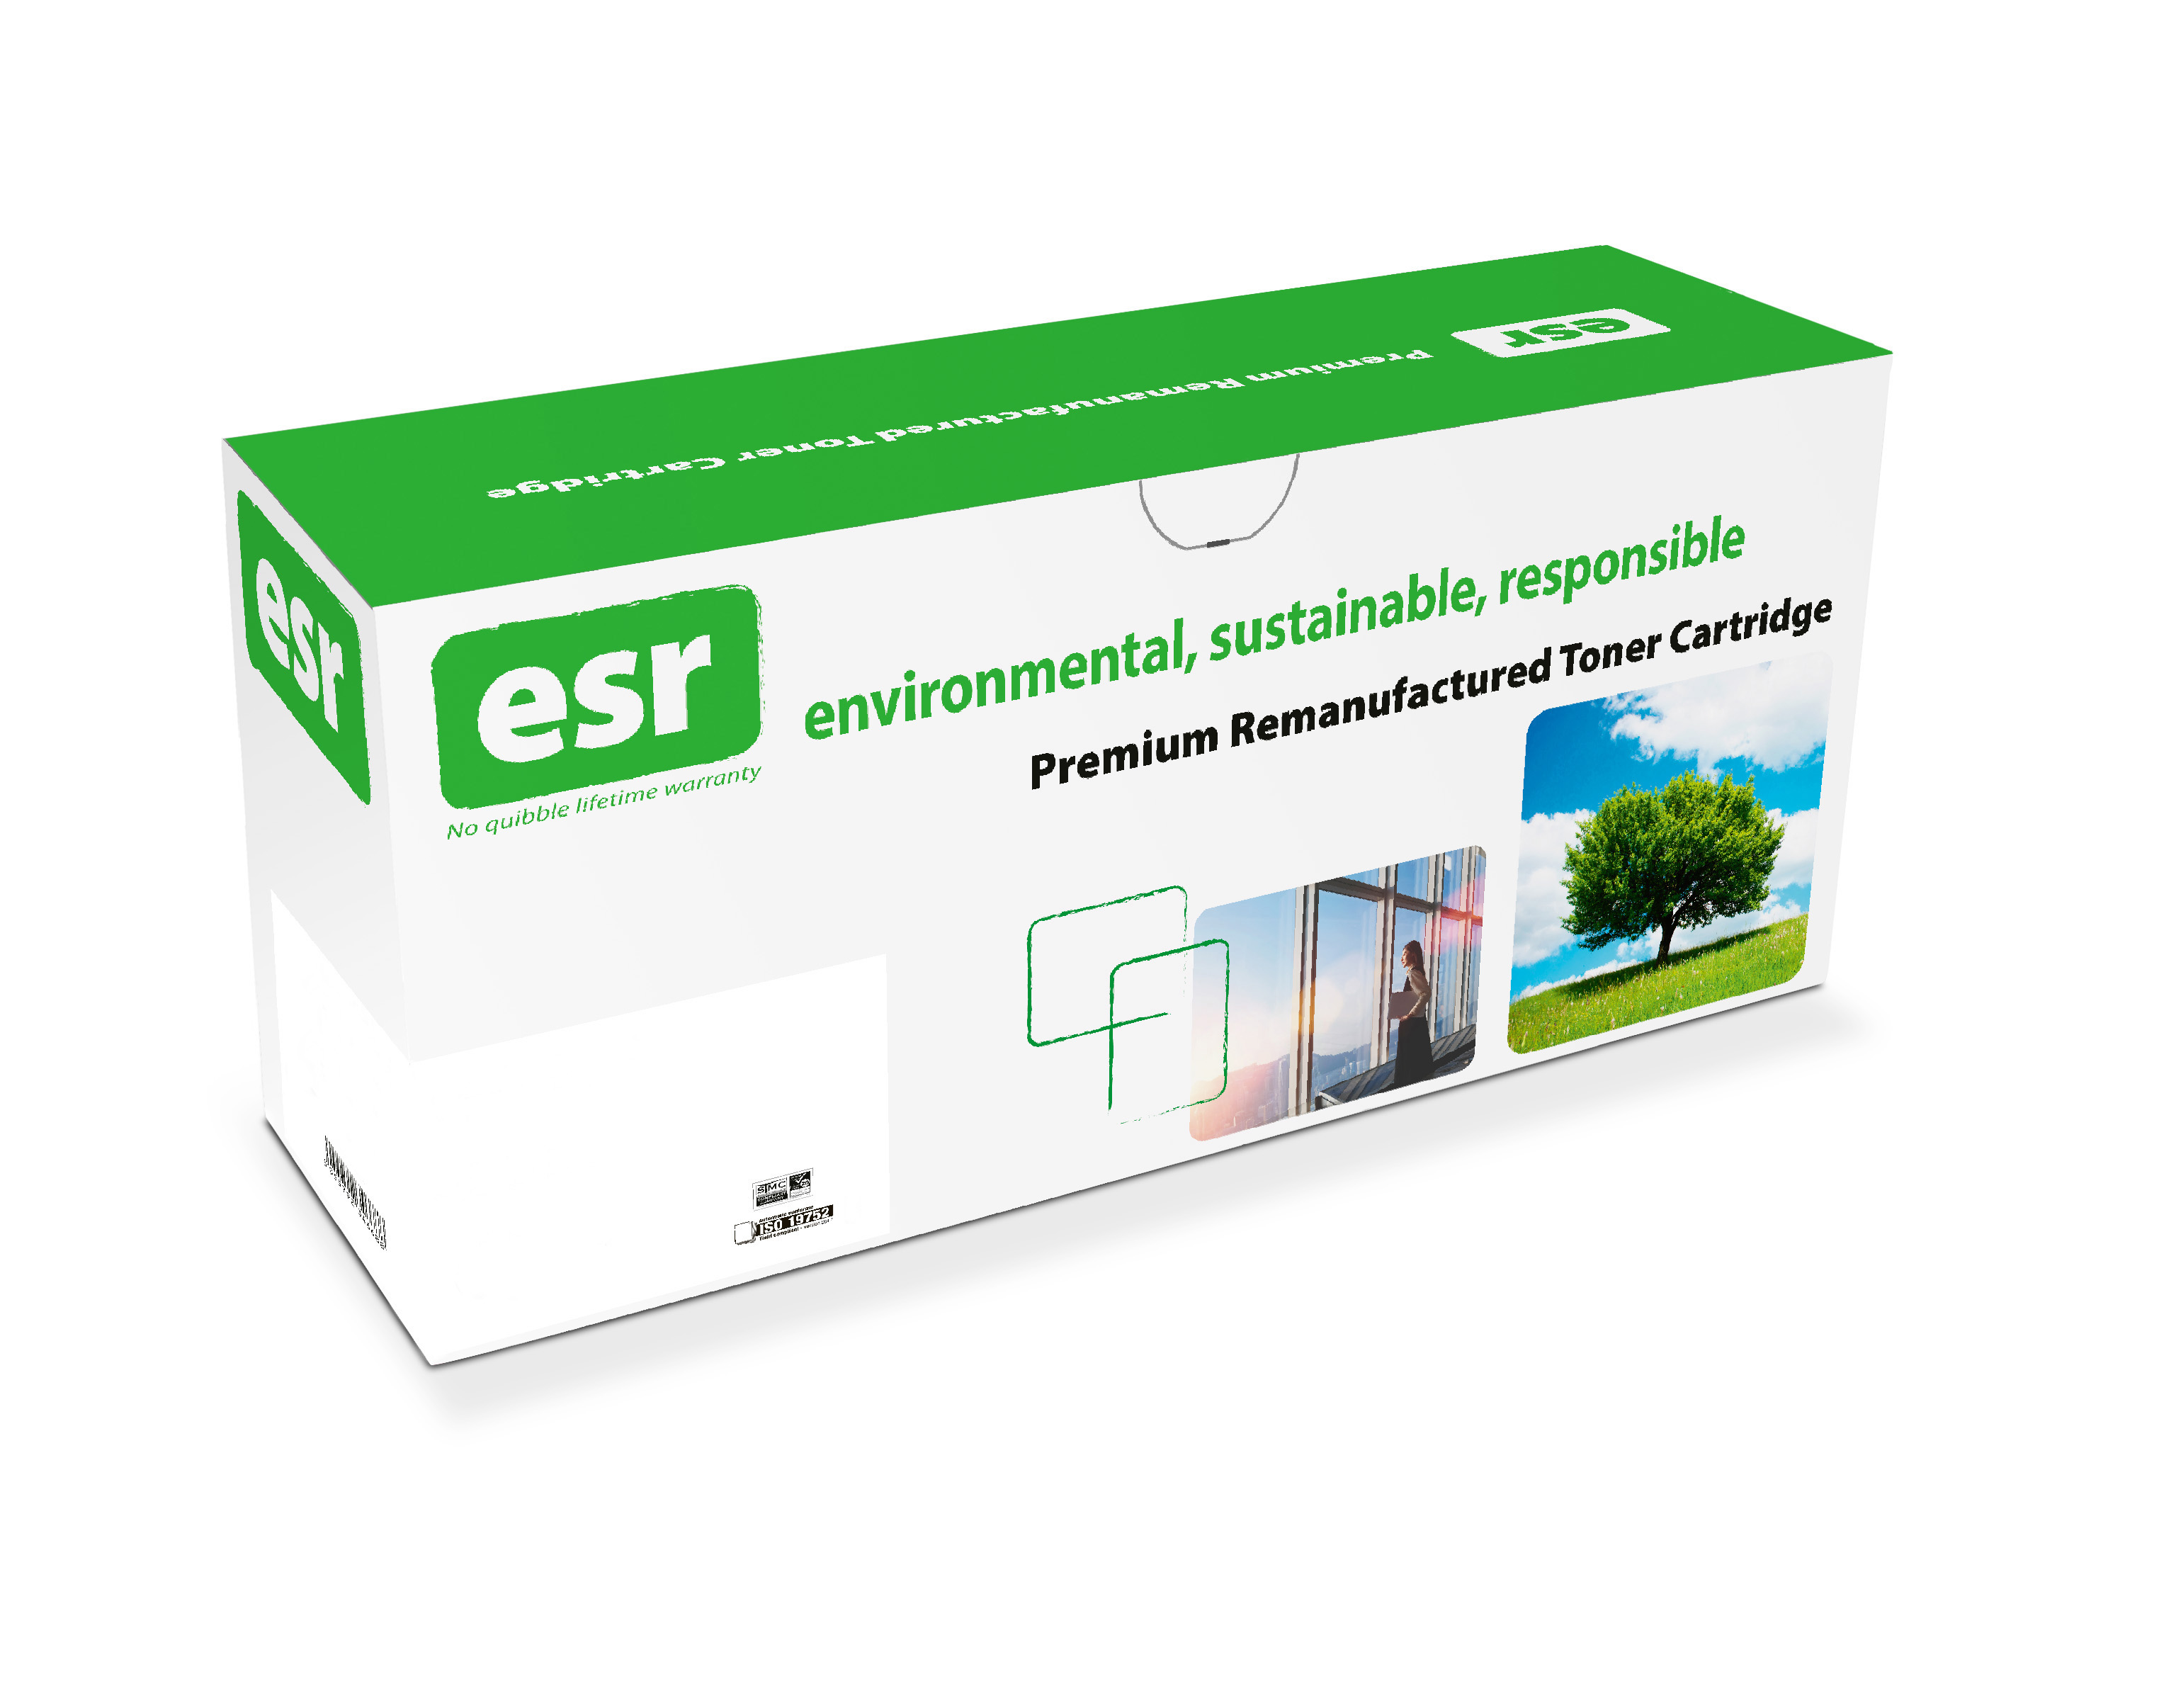 Laser Toner Cartridges esr Remanufactured Brother DR1050 Drum Unit 1K